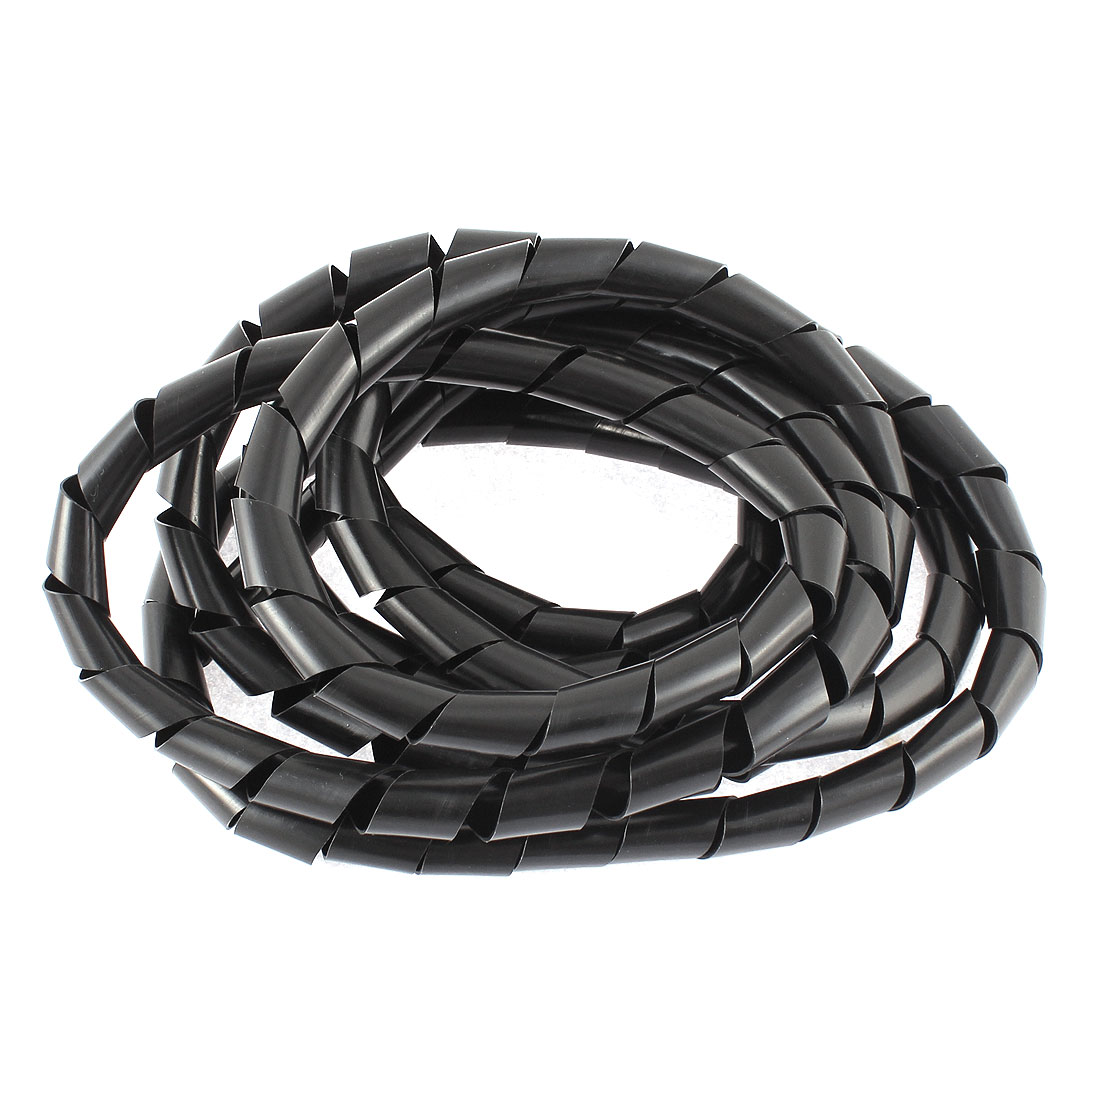 3 Meters 10ft Long 9mm x 7mm Black Flexible Wire Spiral Wrap Sleeving Band Tube Cable Manager Protector